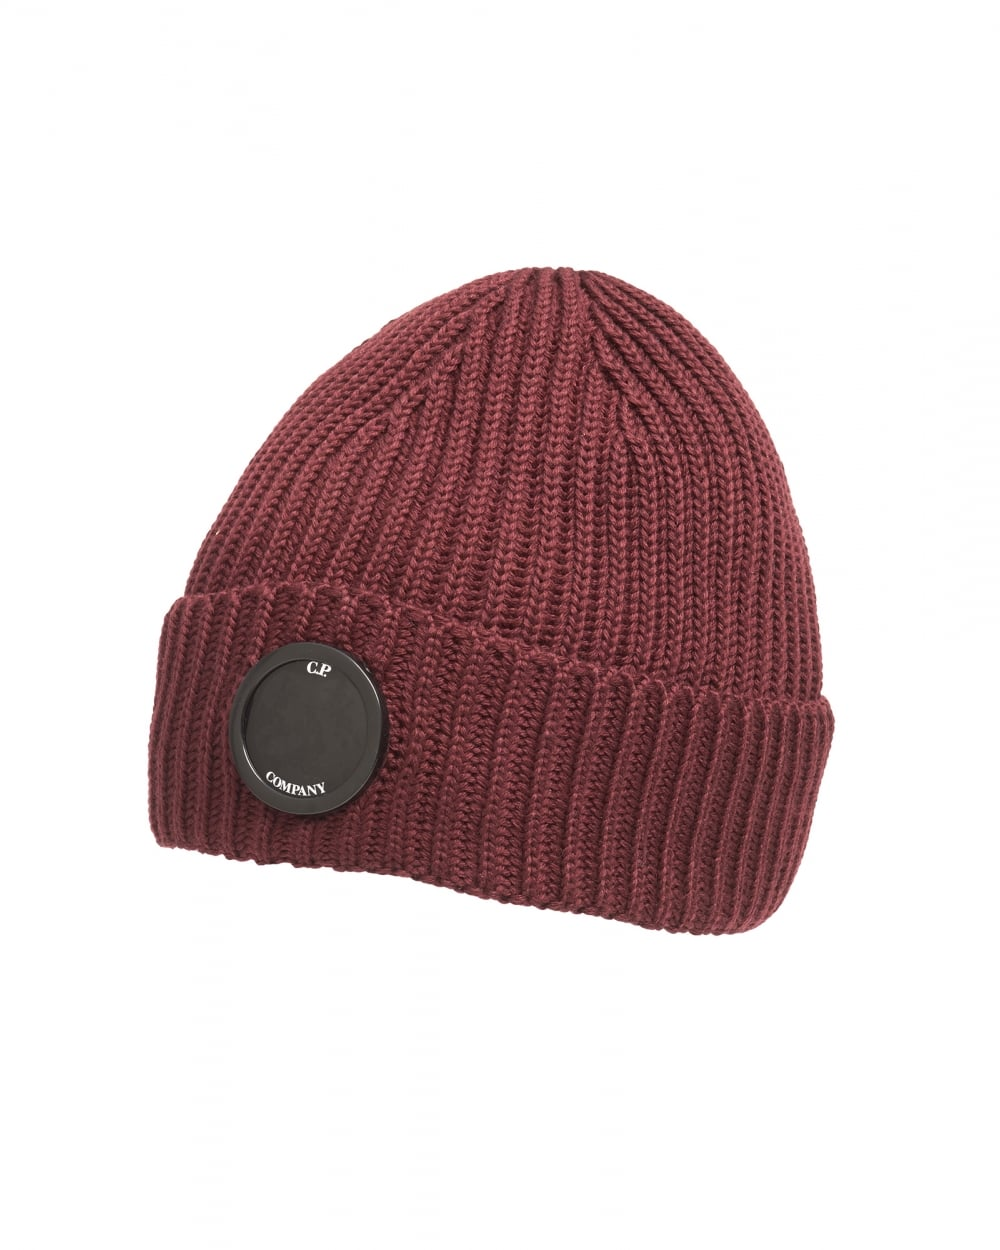 eda5a0f750e C.P Company Mens Burgundy Red Goggle Lens Ribbed Beanie Hat